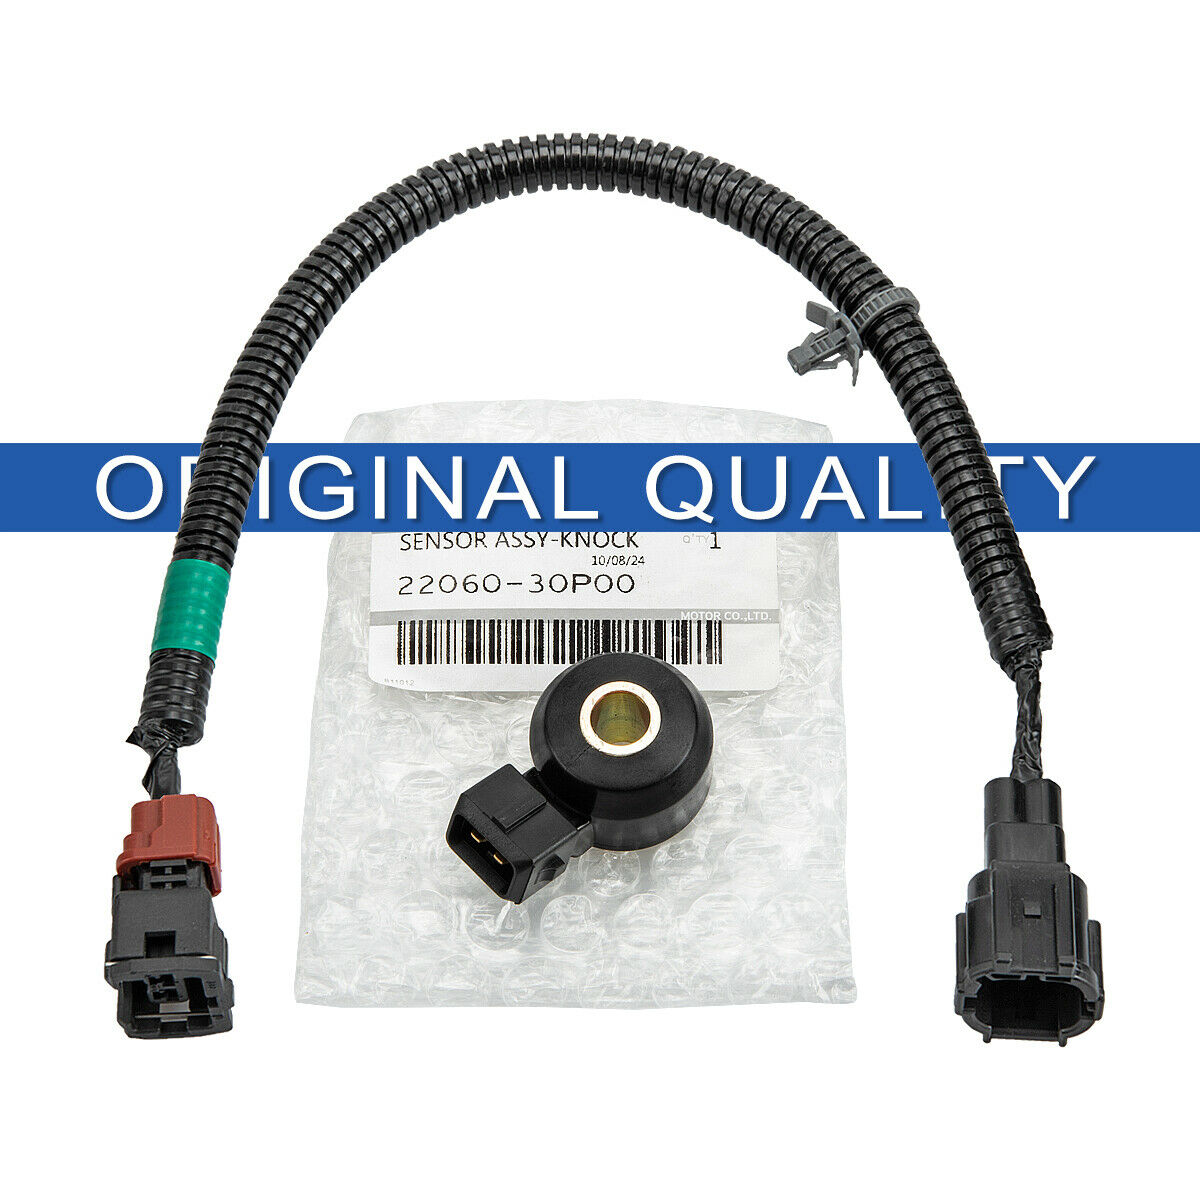 OEM Knock Sensor & Wire Harness For Nissan Maxima I30 Pathfinder Infiniti  Q45 1 of 12FREE Shipping ...